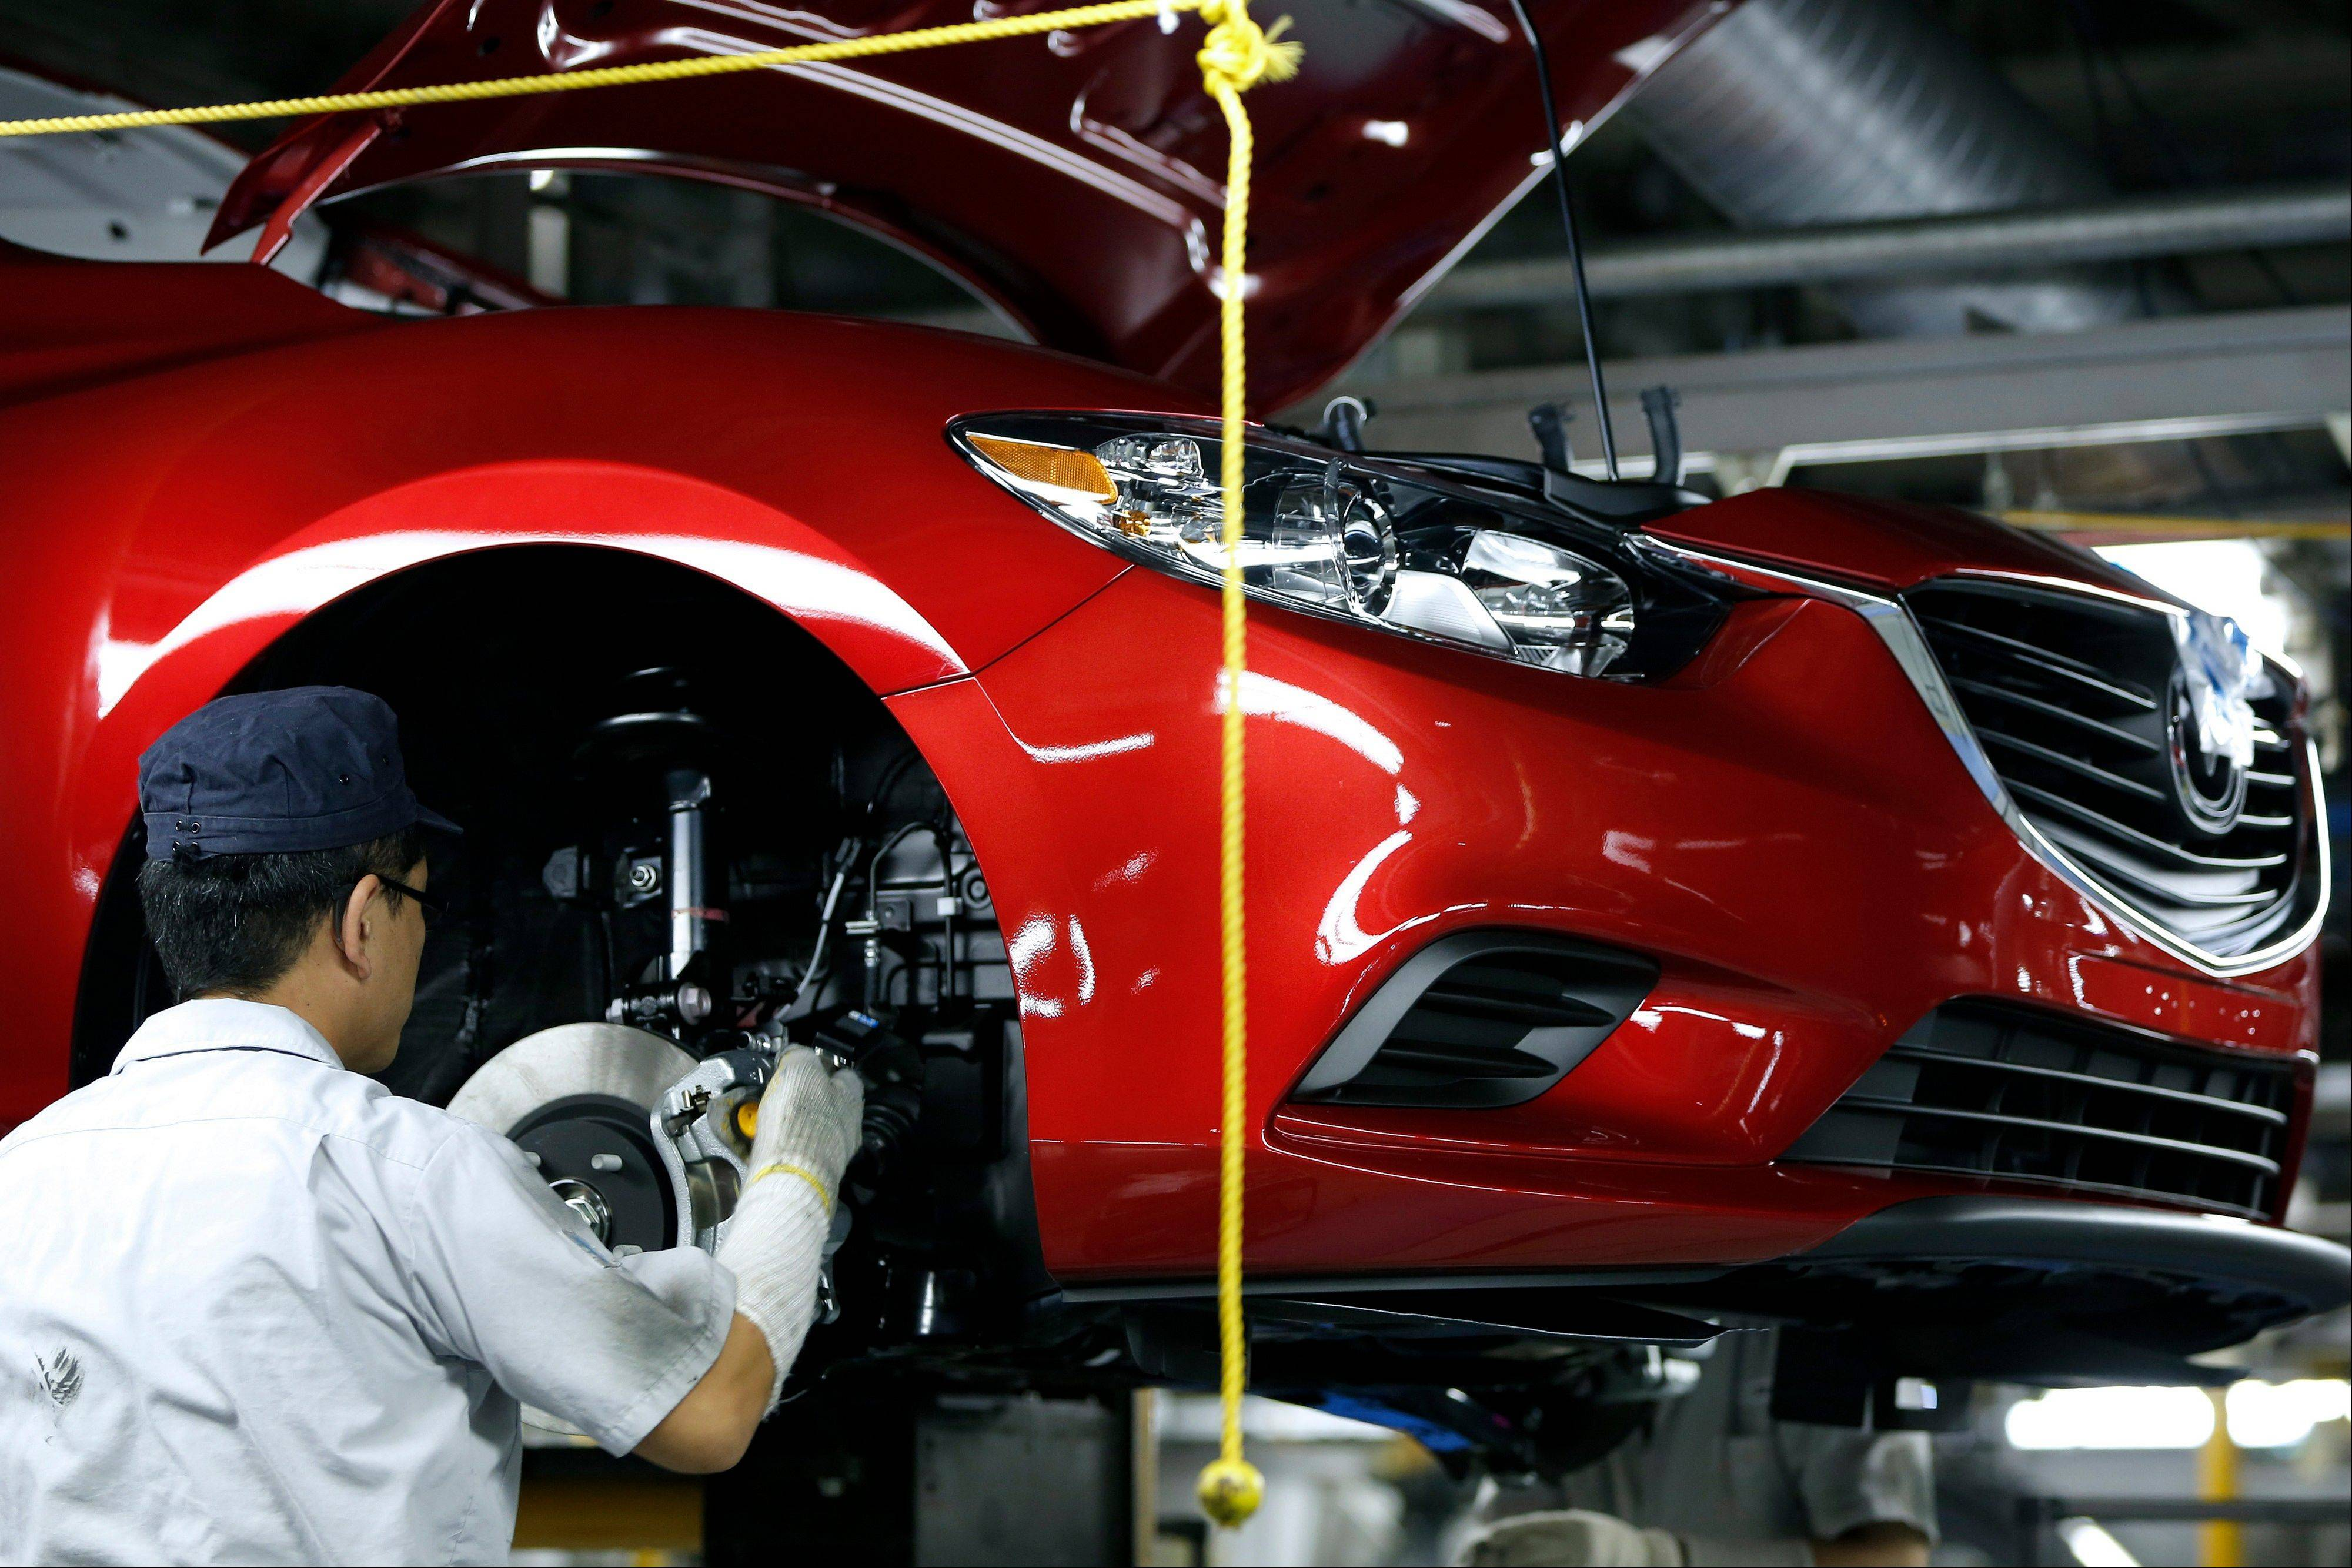 An employee assembles a Mazda Motor Corp. Atenza sedan (Mazda 6) on the production line at the company�s plant in Hofu, Yamaguchi Prefecture, Japan, on Tuesday, Aug. 27, 2013. Mazda is Japan�s most export-dependent carmaker.